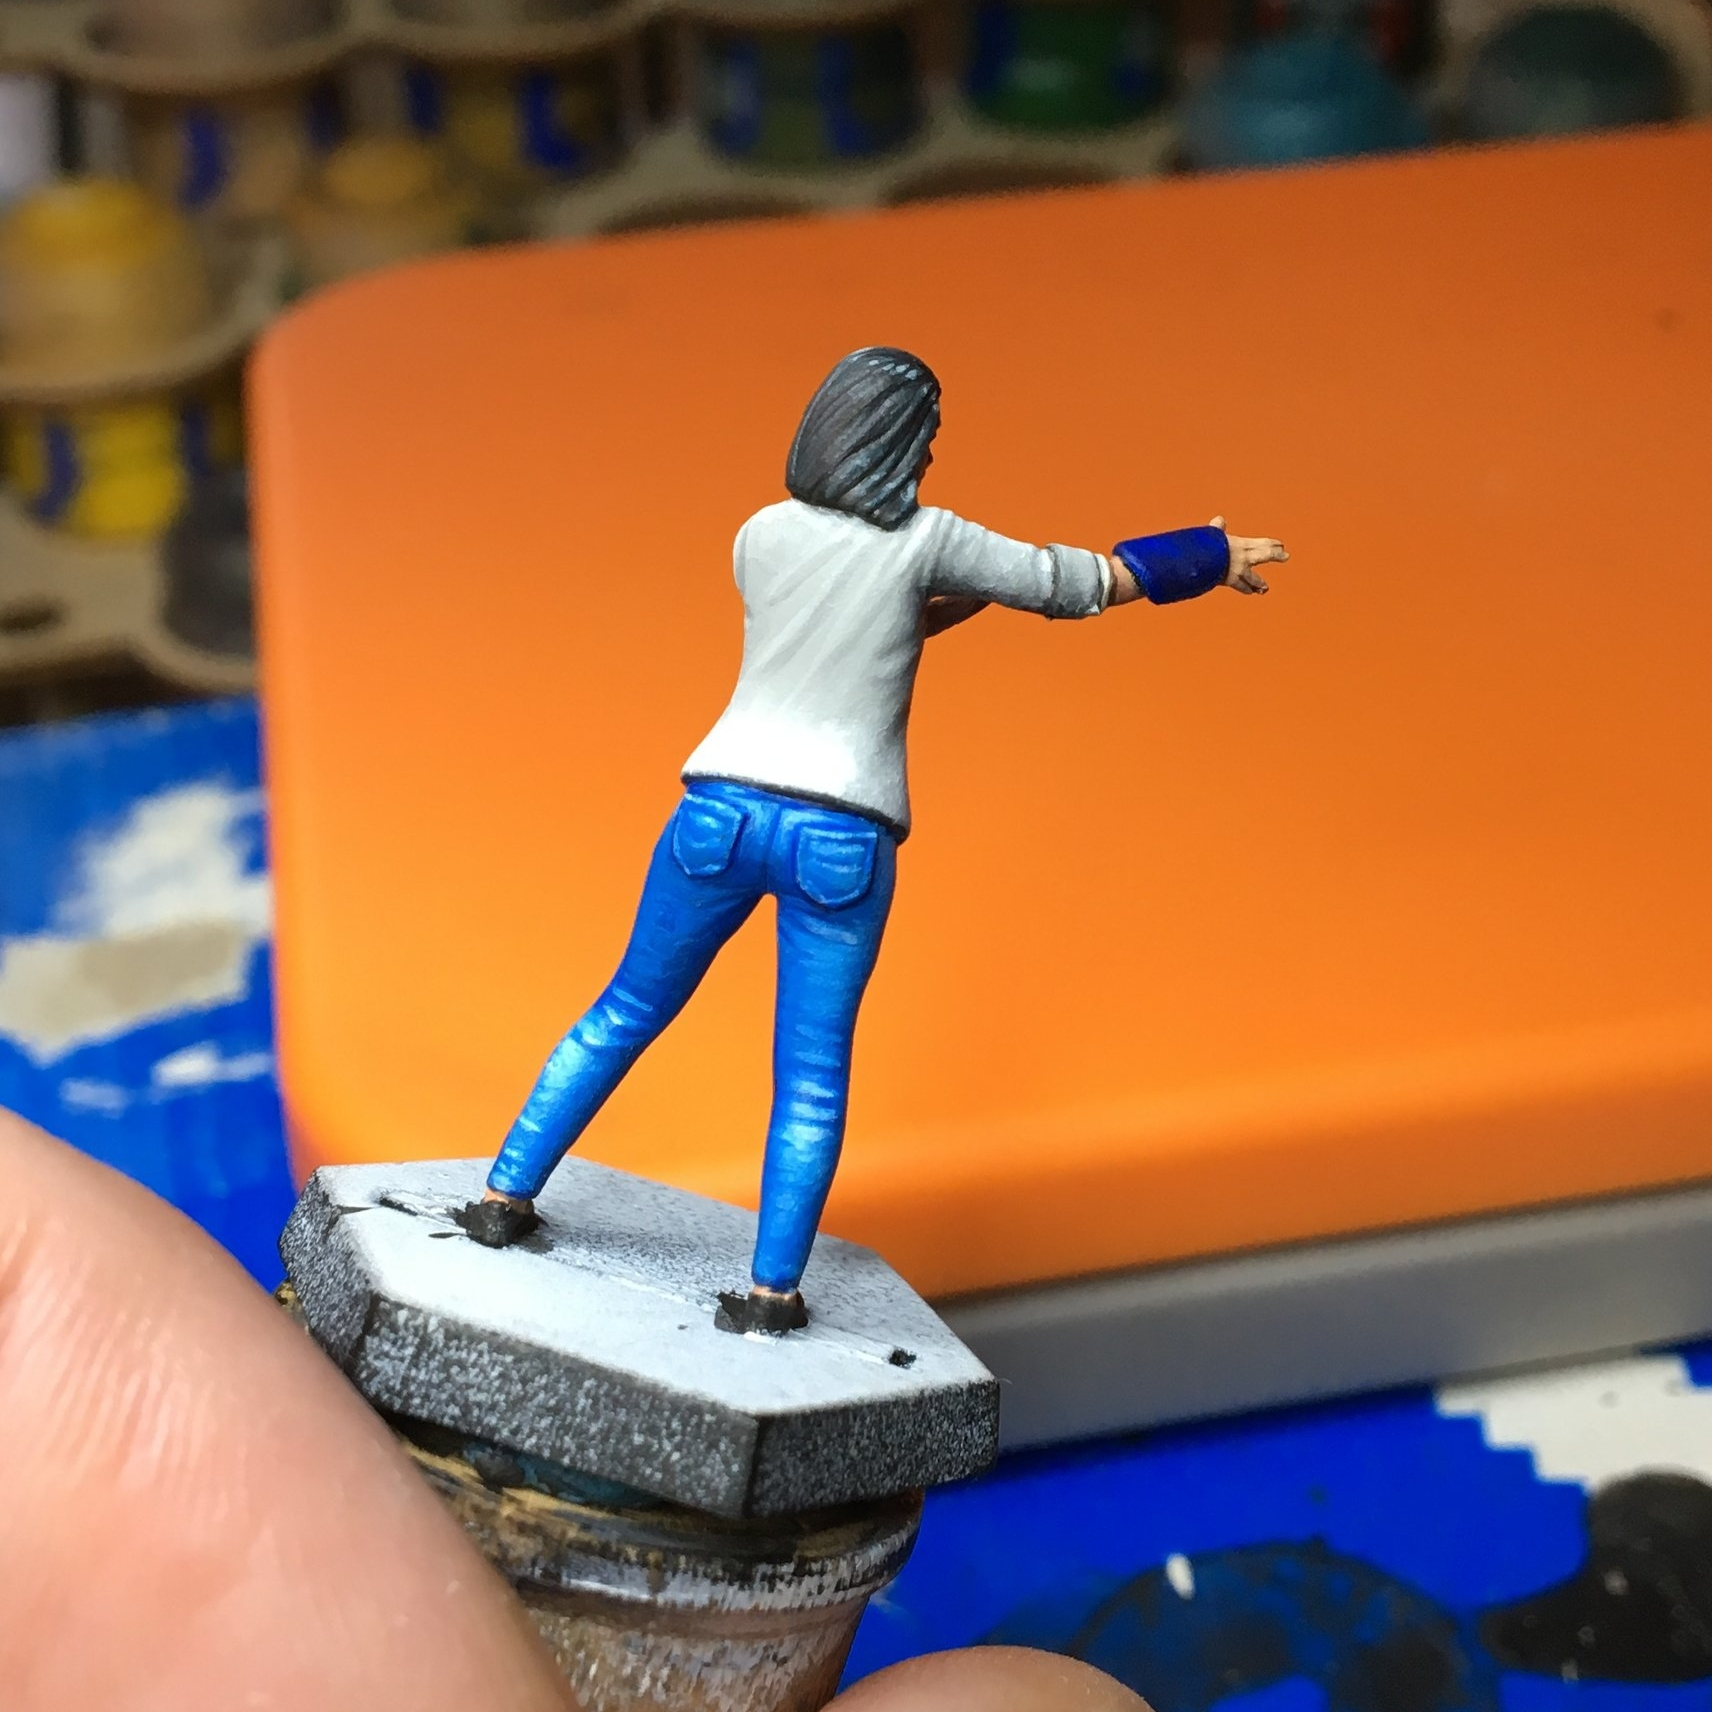 Her pants go from very dark blue shadows to a few pure white highlights, all carefully layered.